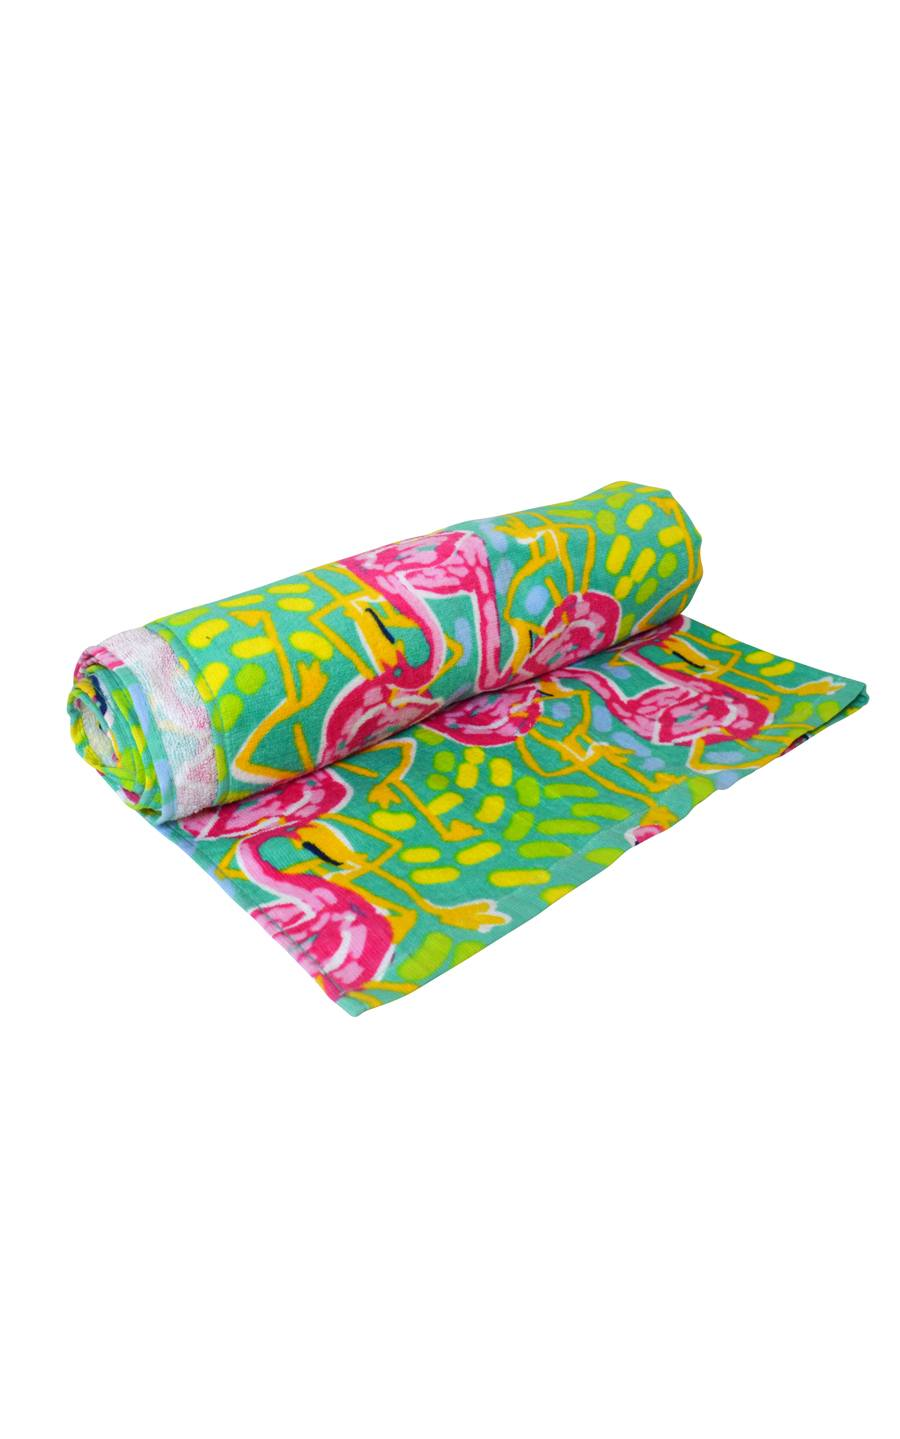 All For Color-Flamingo Squad Beach Towel-Beach Towel